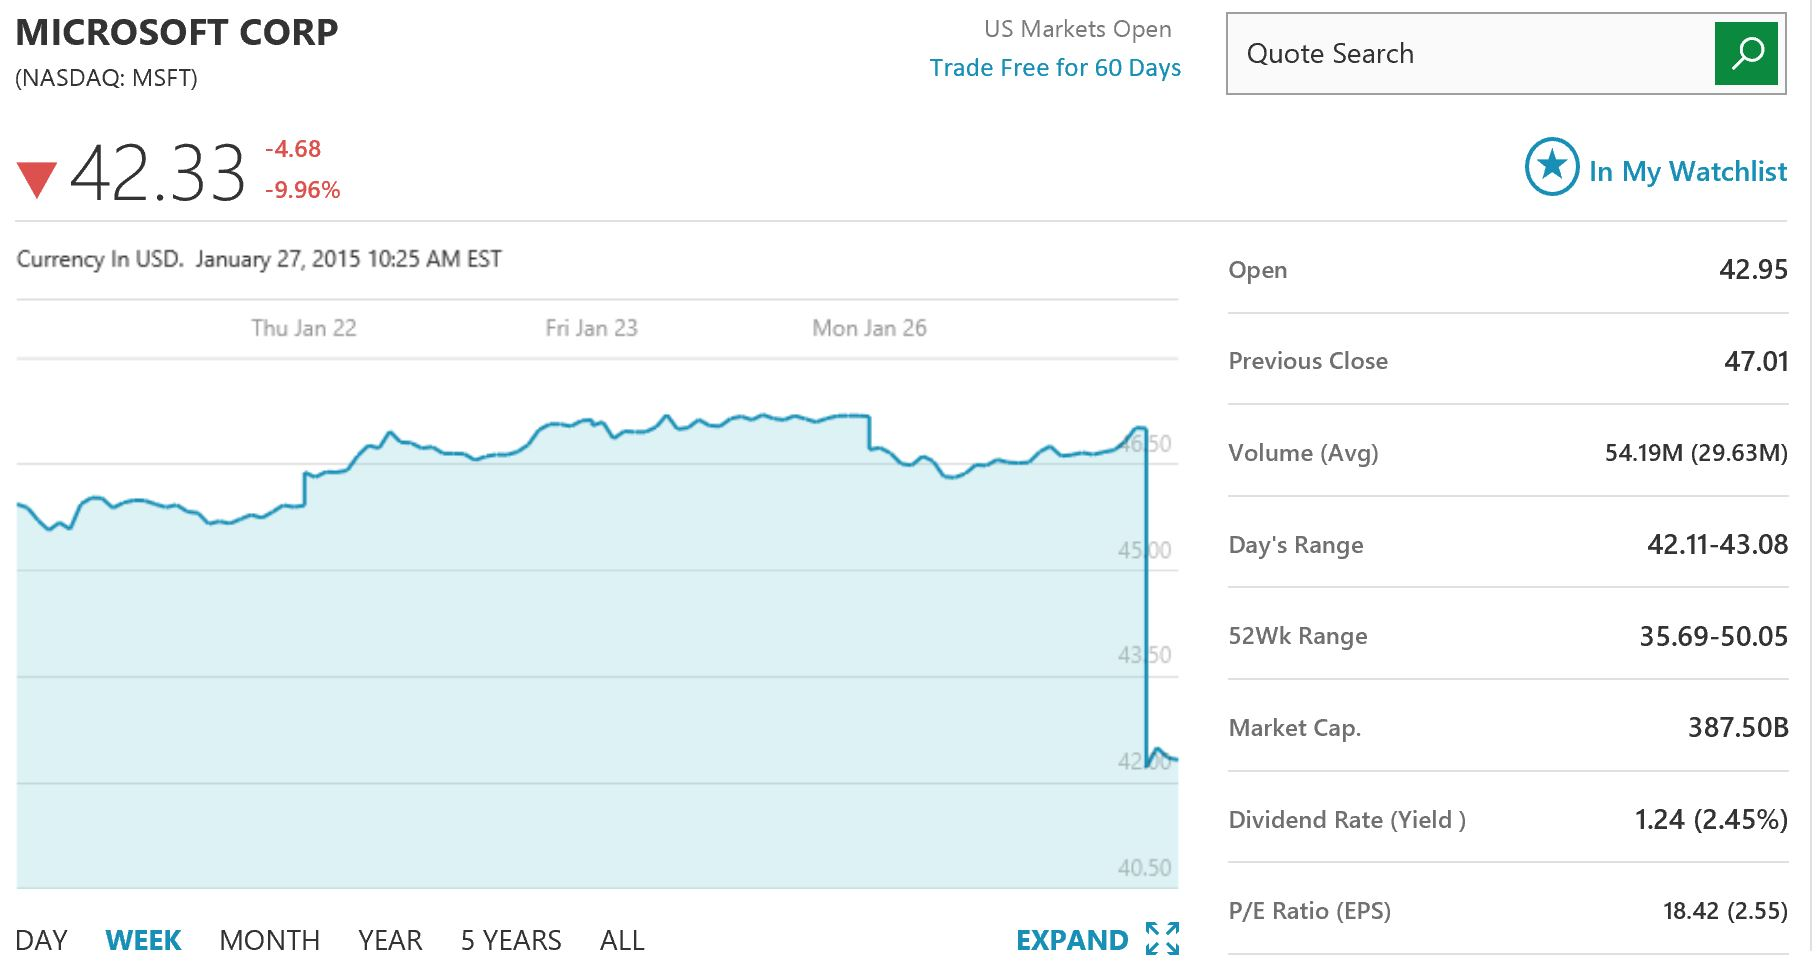 msft stock quote msnbc morning